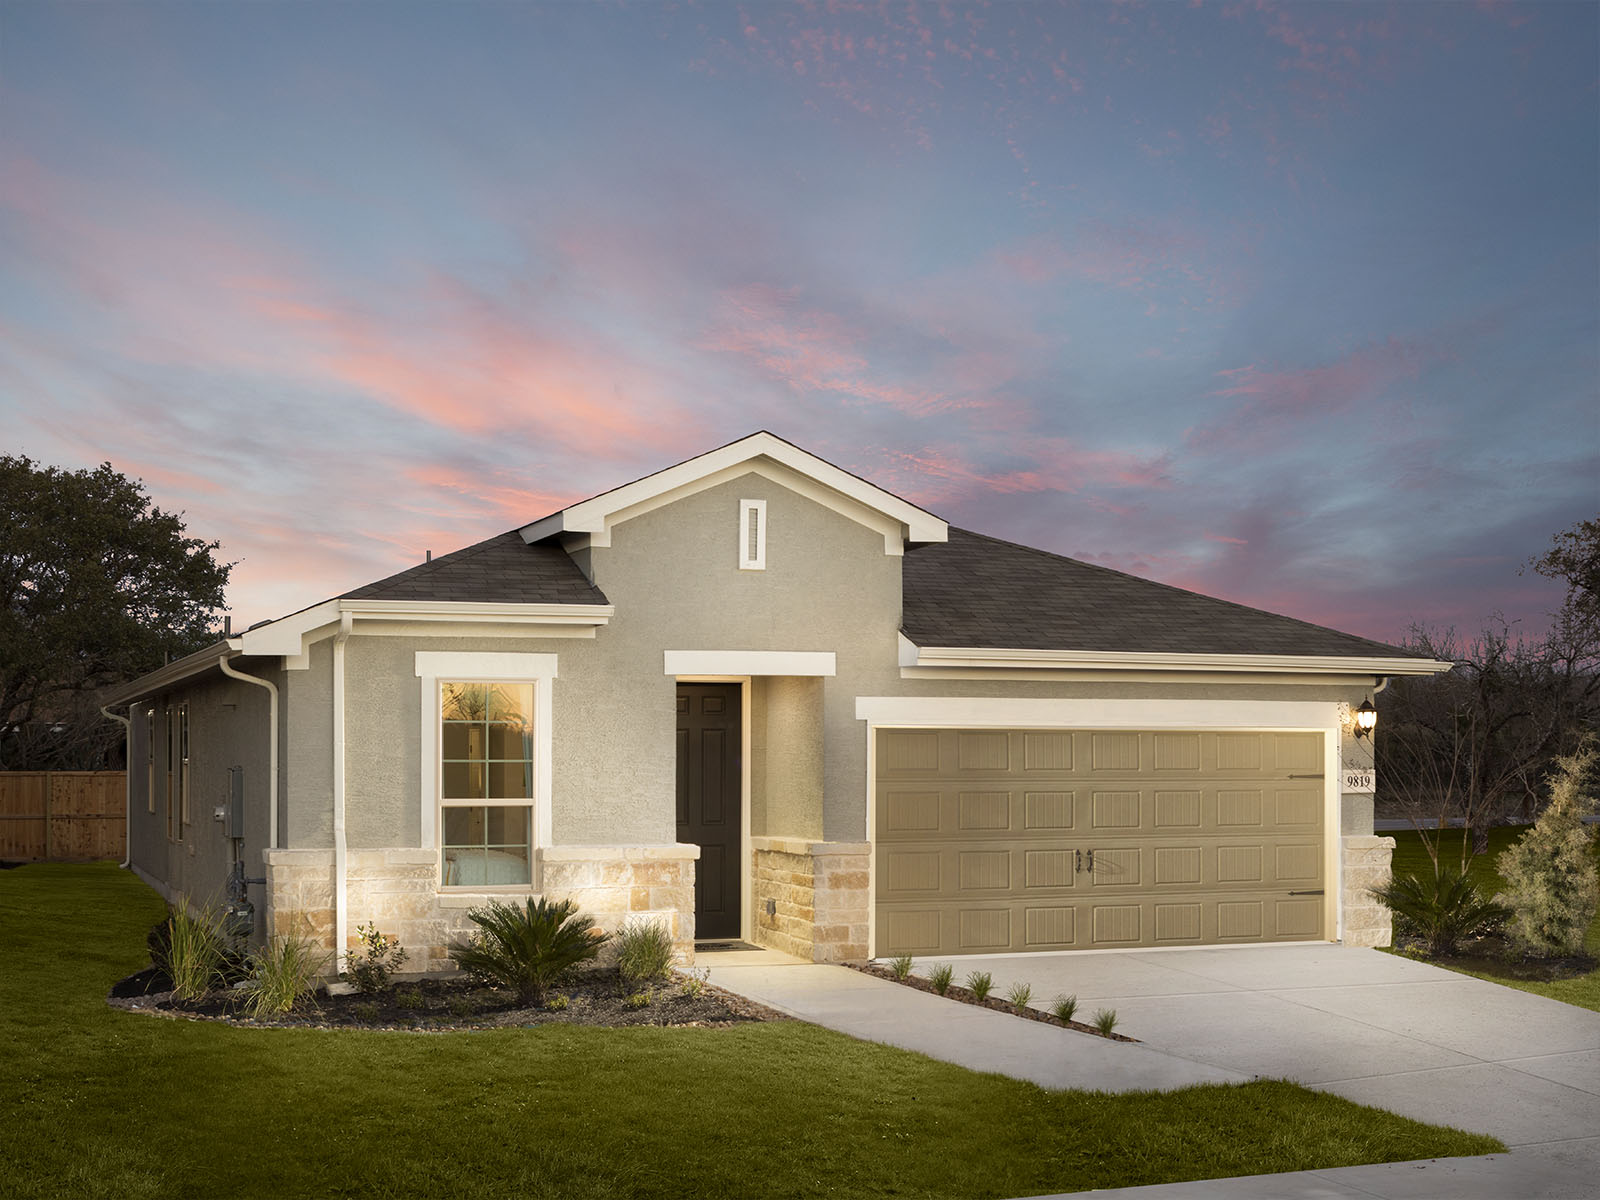 Prescott Oaks by Meritage Homes | New Homes for sale in San